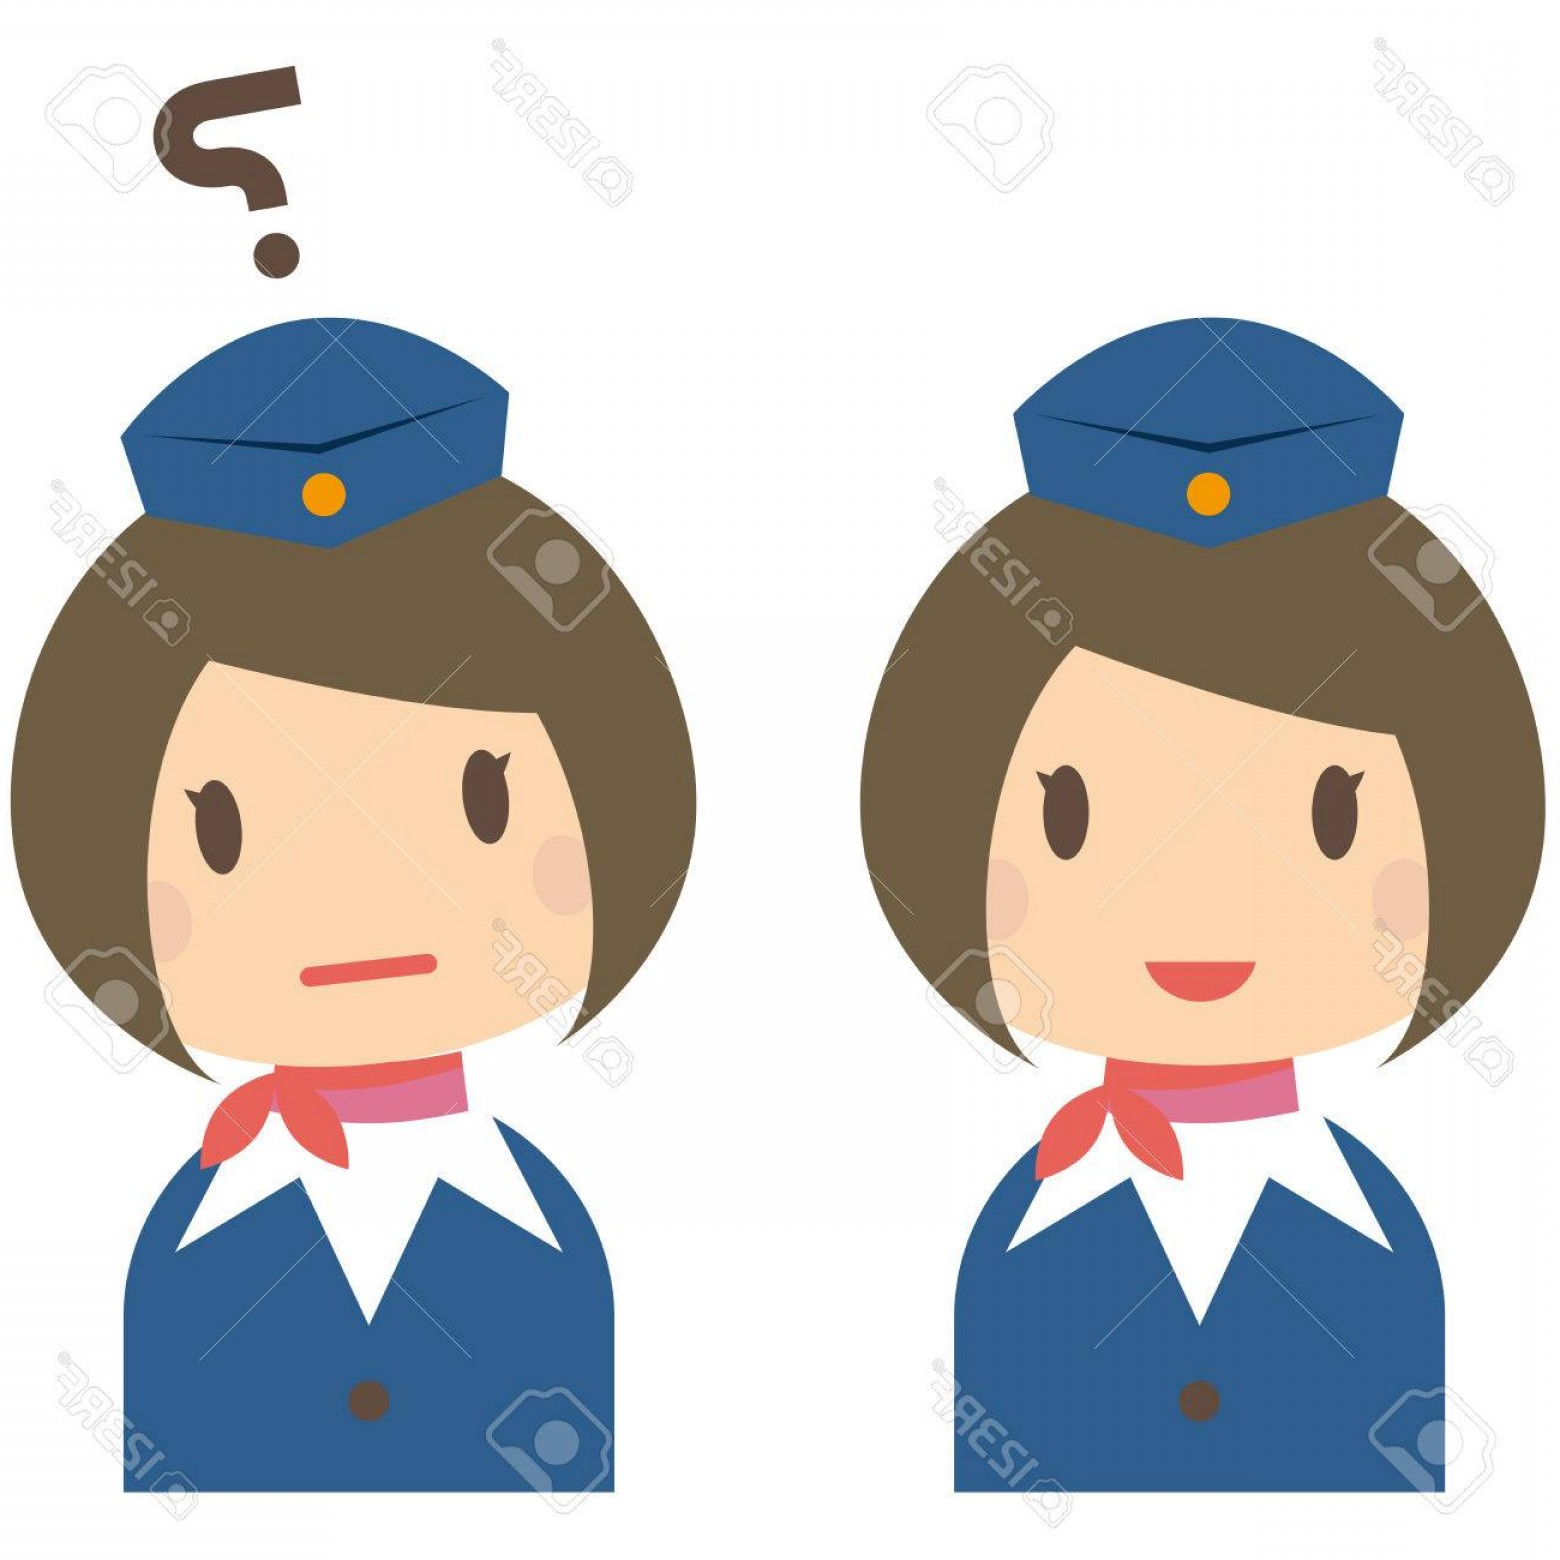 Vector Man Working In Cabin: Photostock Vector Cute Cabin Crew With Bobbed Hair Smile And The Question